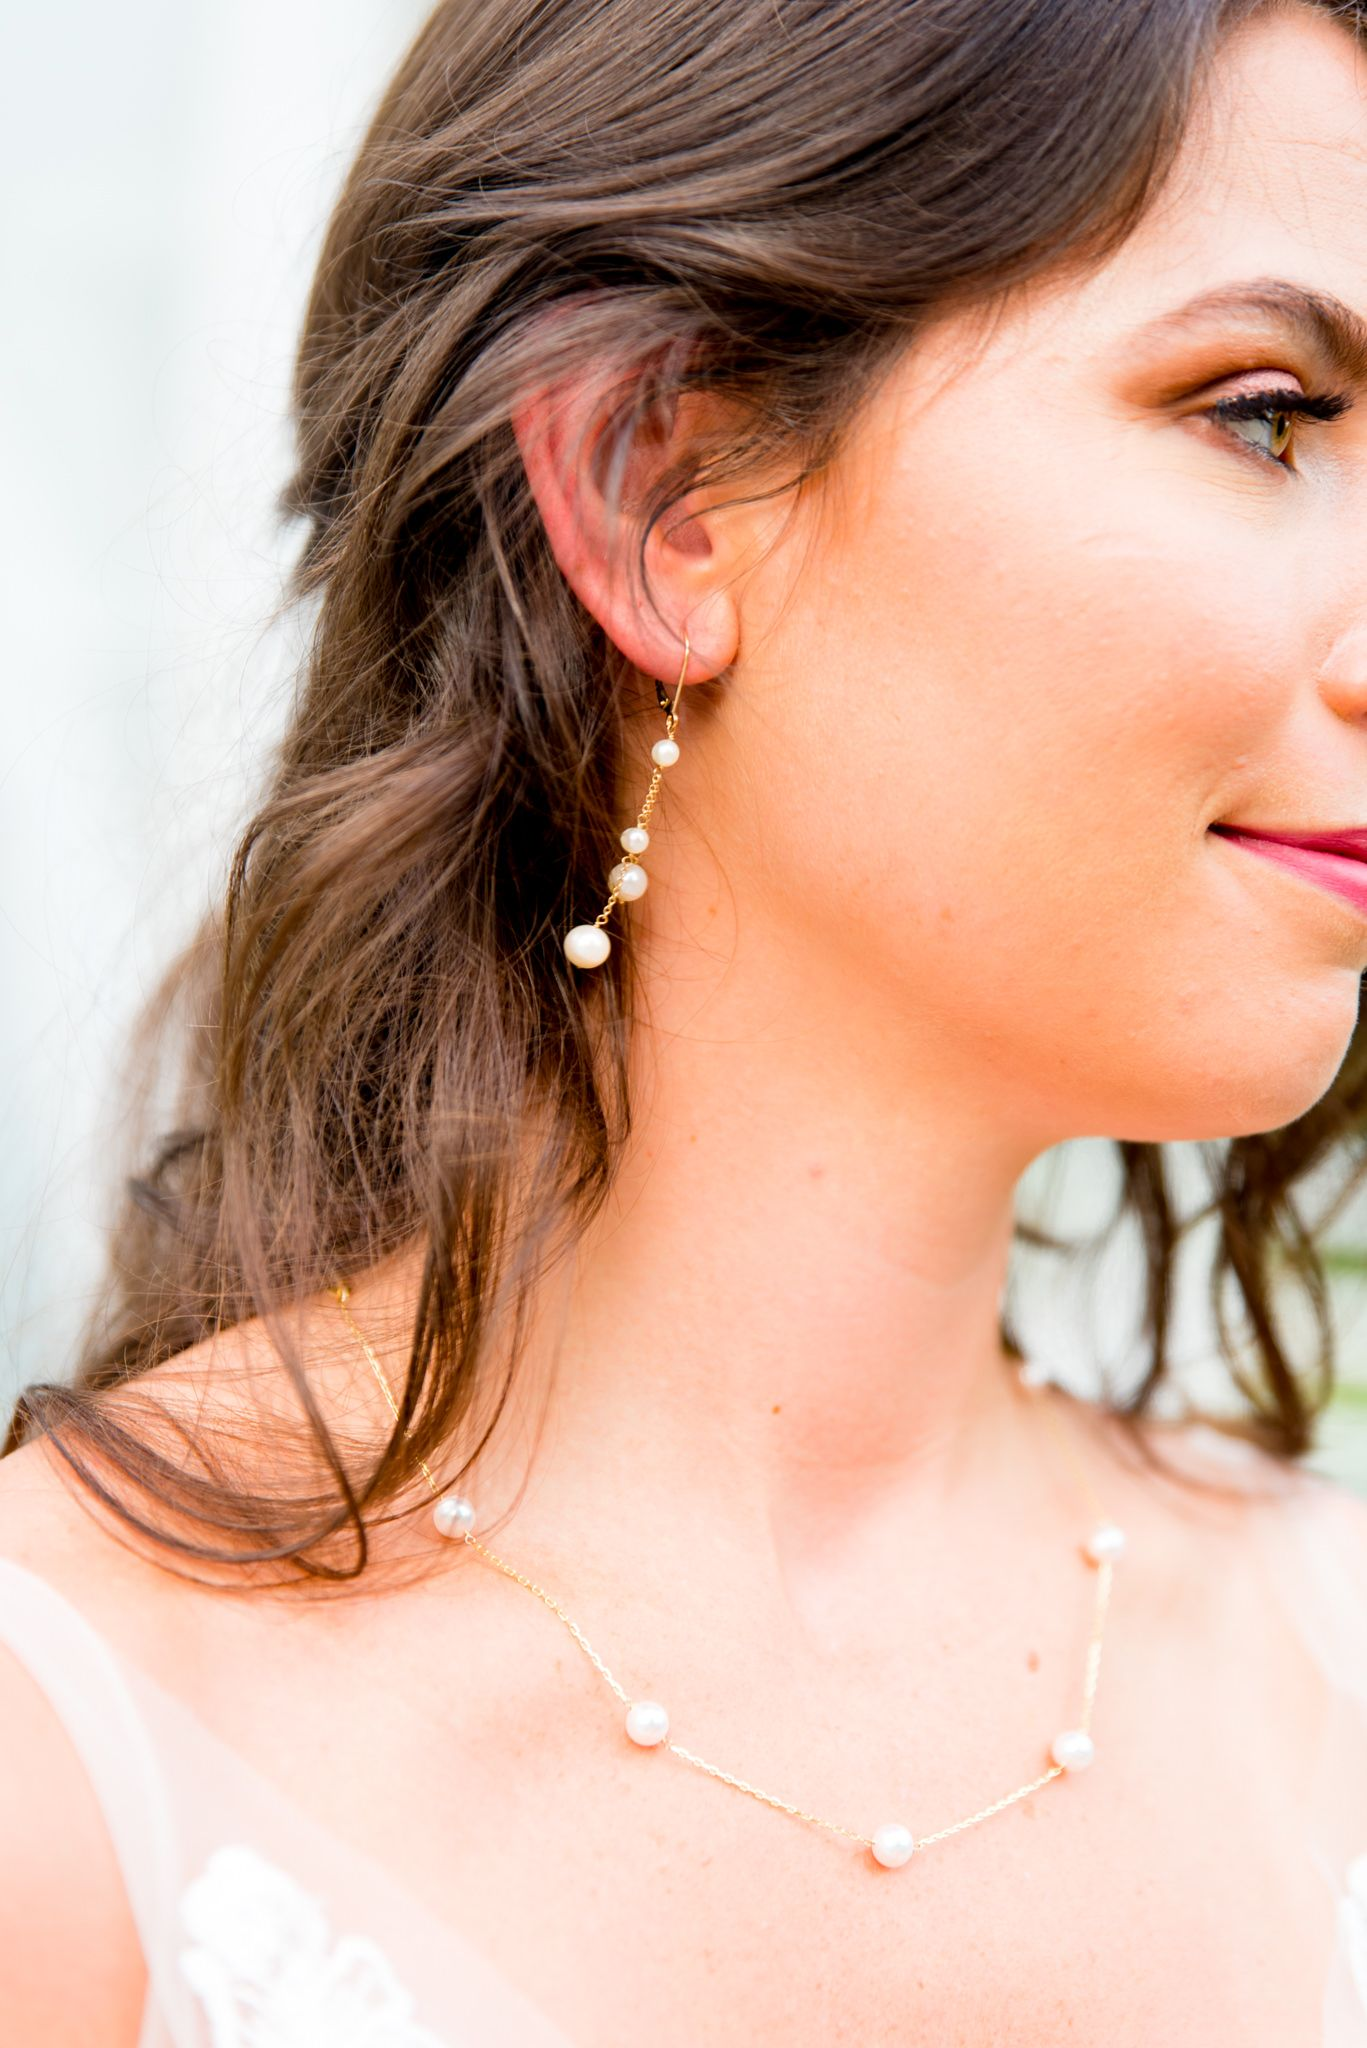 profile of brown haired bride wearing gold peal dangle earrings and gold pearl necklace for wedding